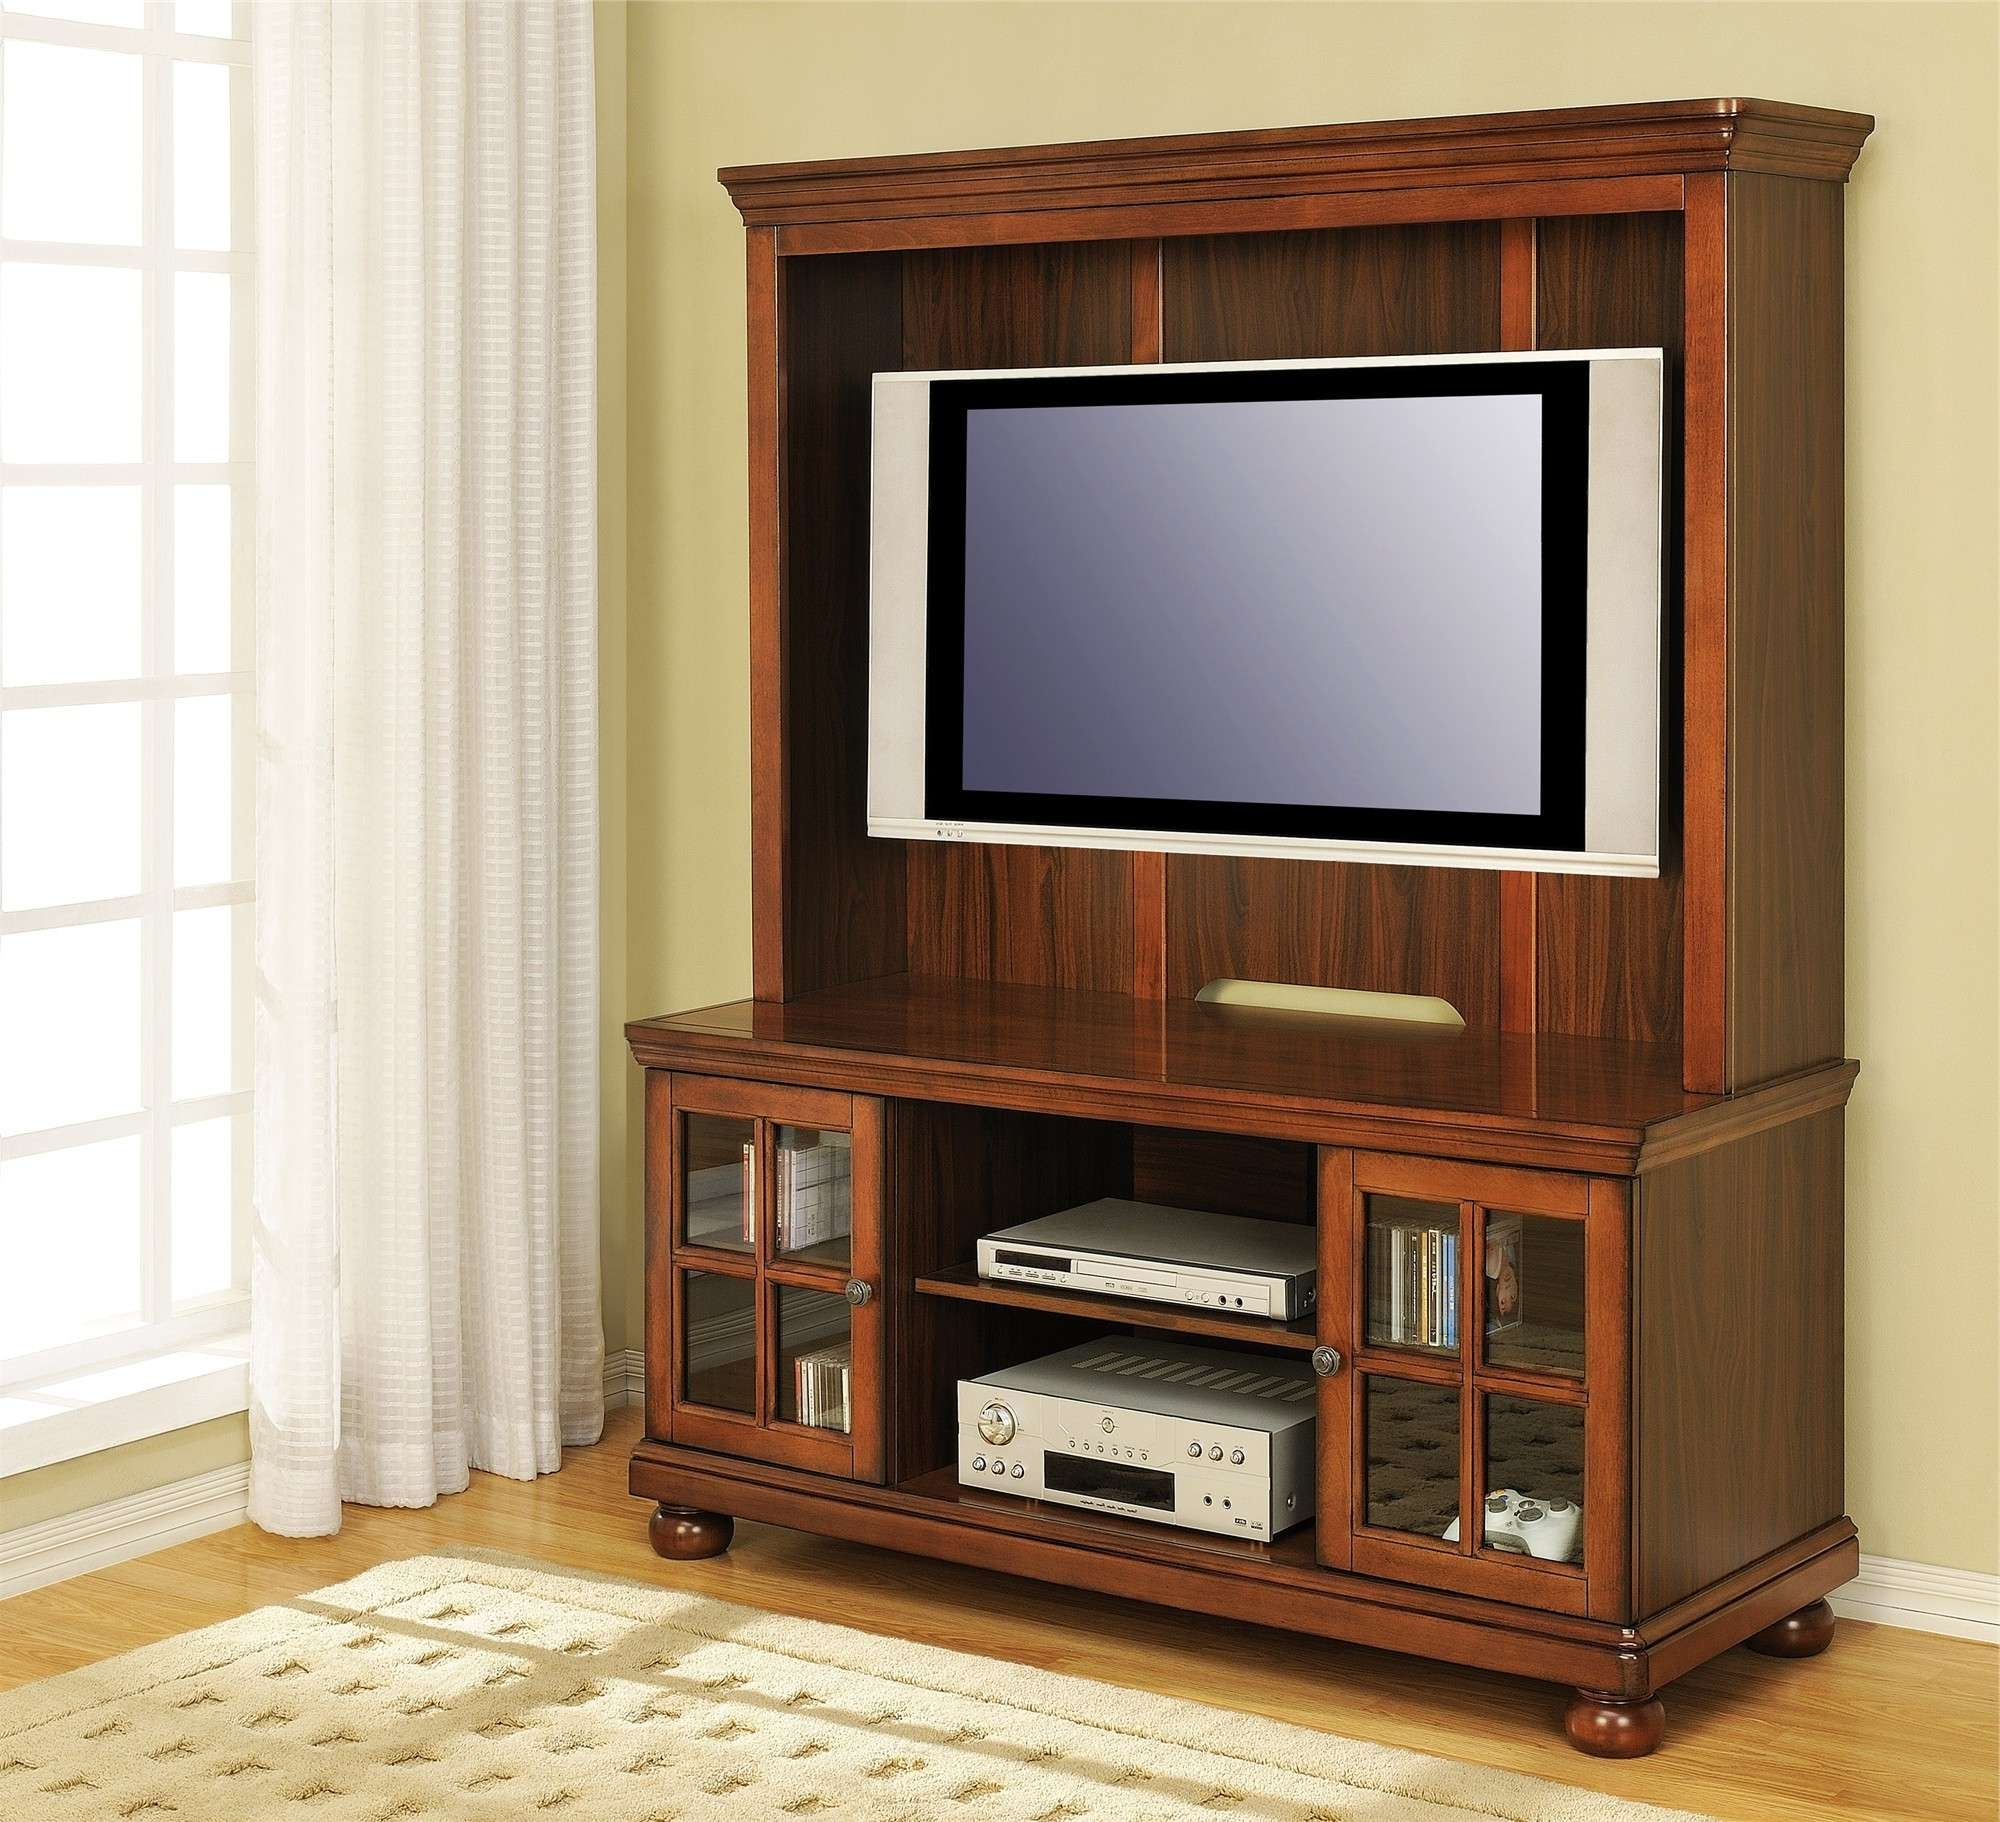 Tv Wall Cabinets For Flat Screens Wall Tv Cabinets For Flat Screens With Doors Zef Jam